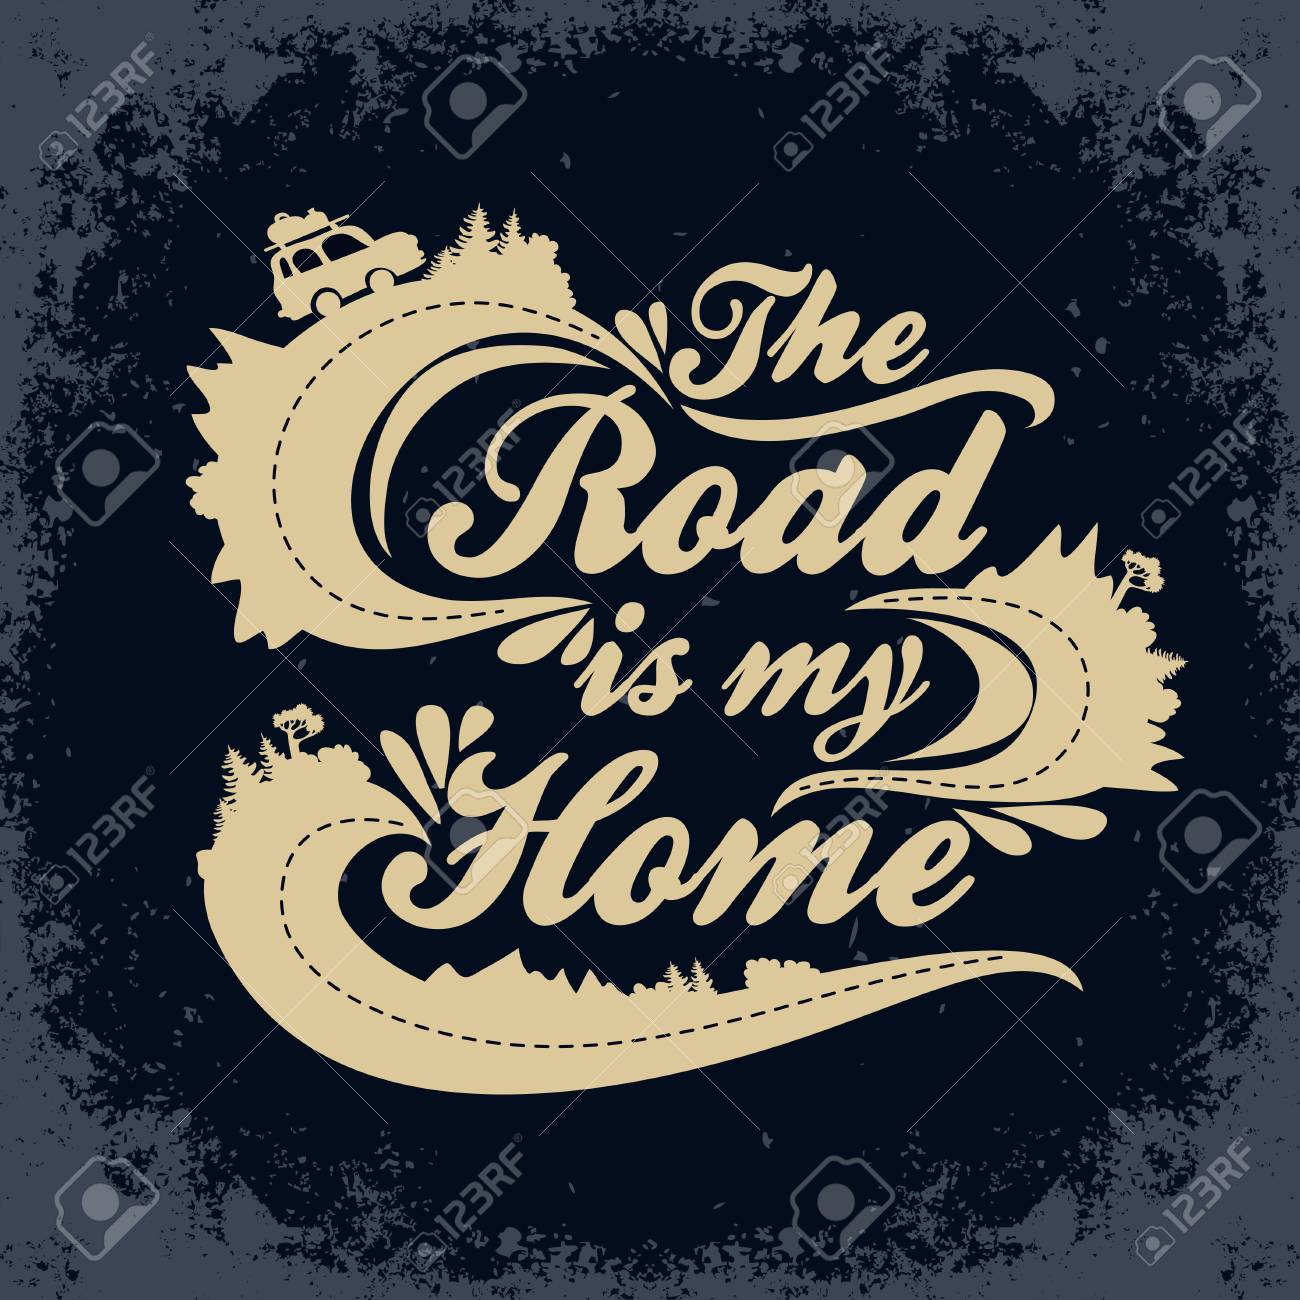 The Road Is My Home Inspiration Typography For T Shirt Print Royalty Free Cliparts Vectors And Stock Illustration Image 93078061